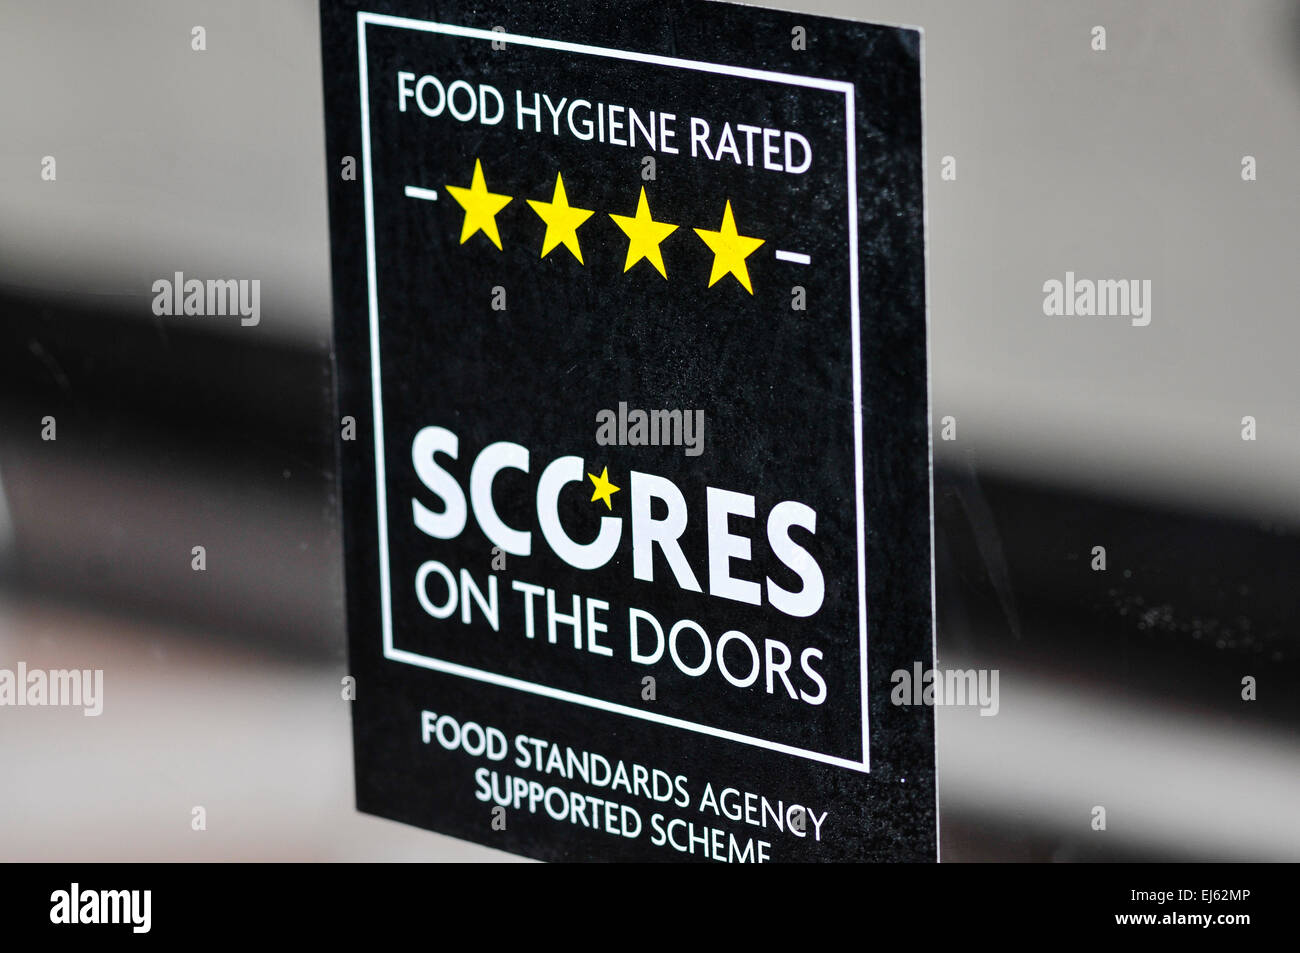 \ Scores on the Doors\  food hygiene rating sign with four stars. \  & Scores on the Doors\